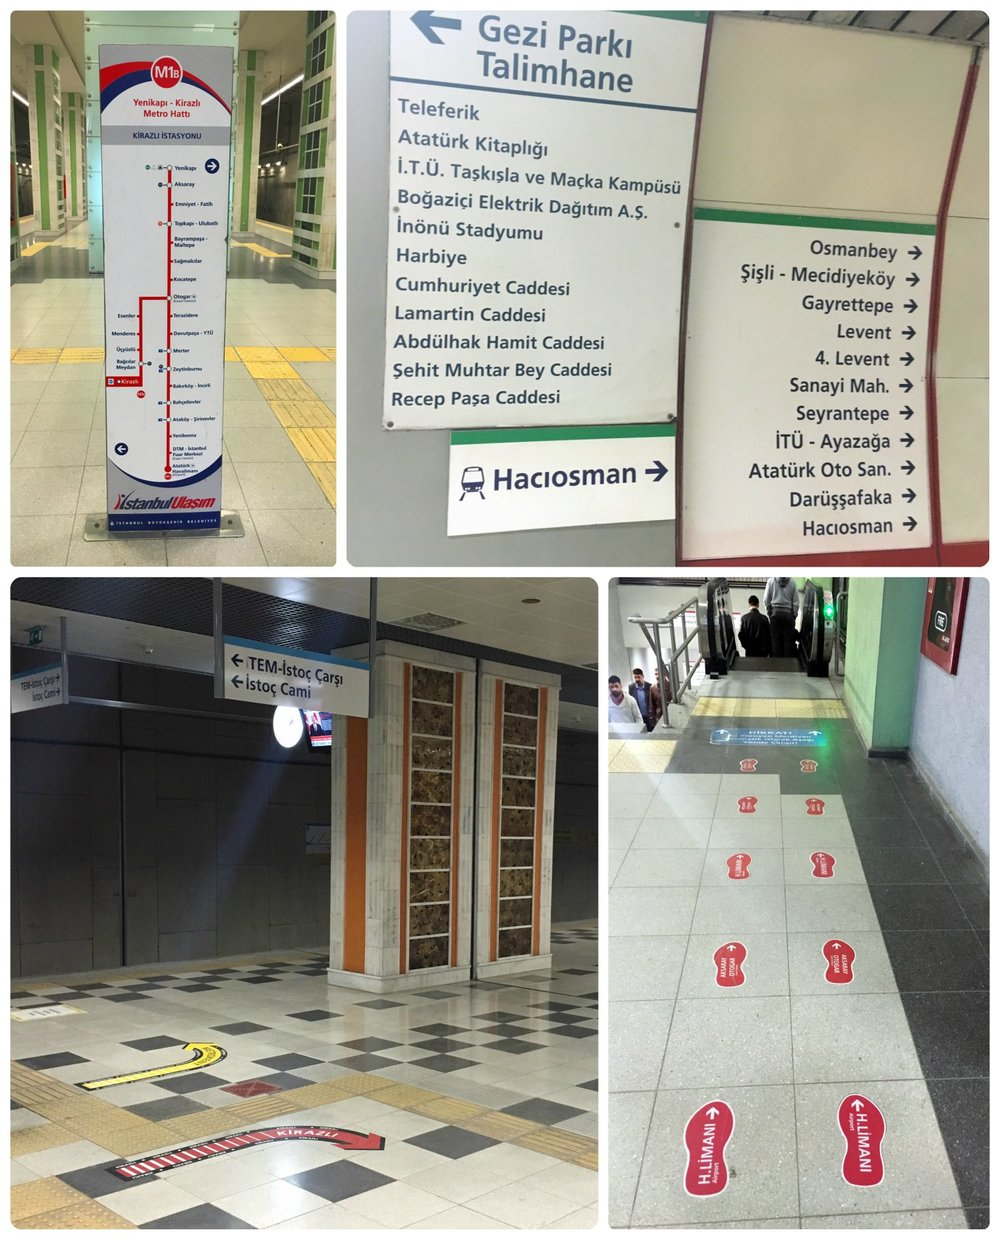 Top: Route maps for different lines are located throughout the station and are color coded to match the color of the line. Bottom: In large stations, footprints and arrows indicated the direction to go, to get to the correct platform.